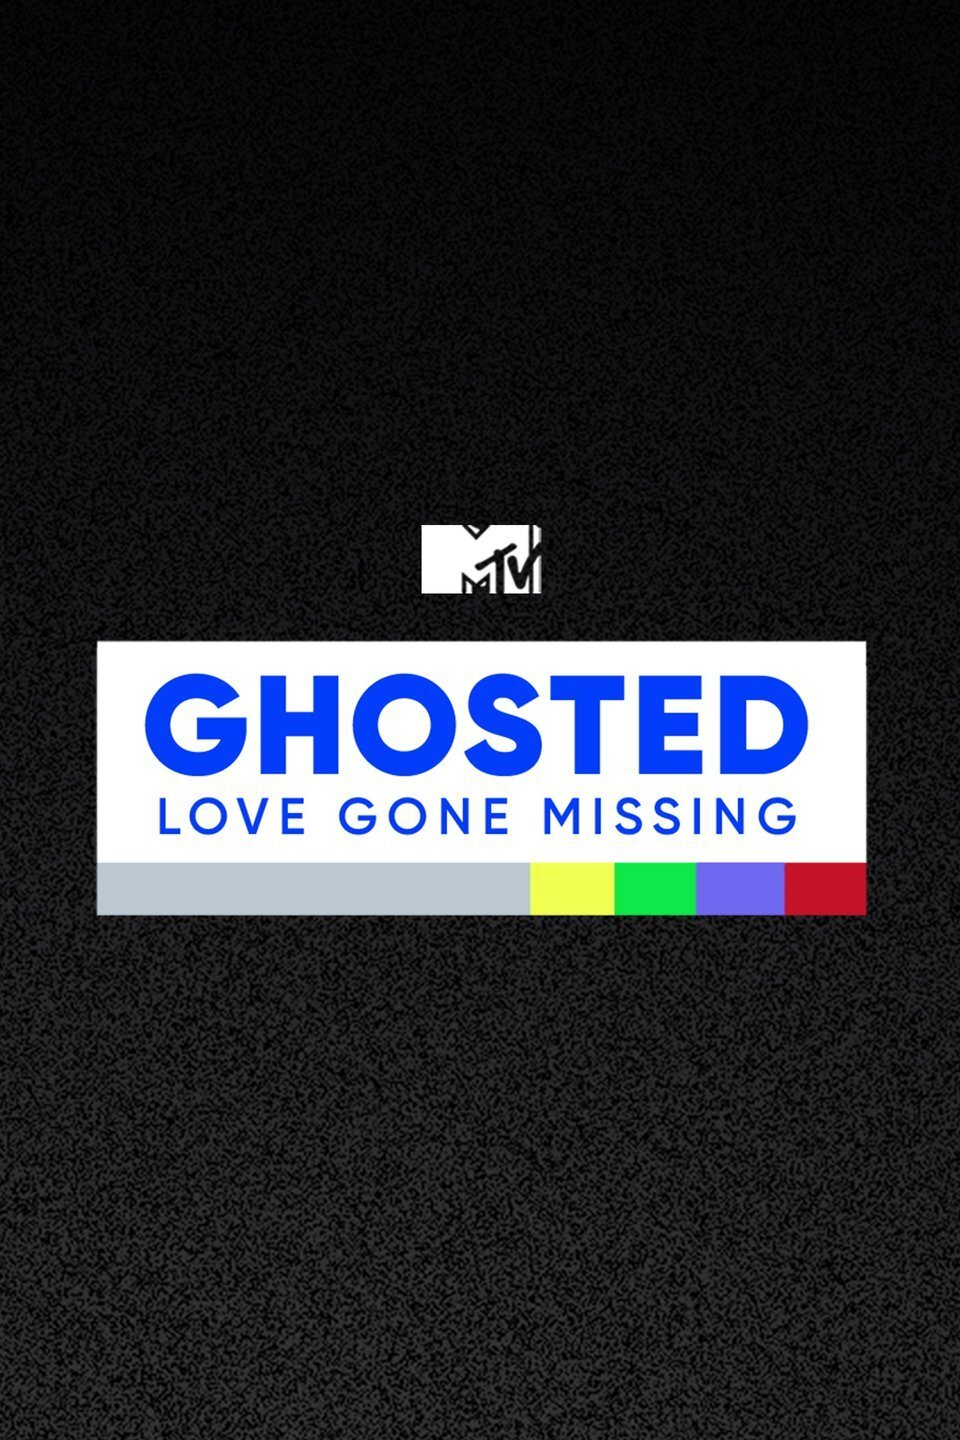 Ghosted-Love Gone Missing.jpg